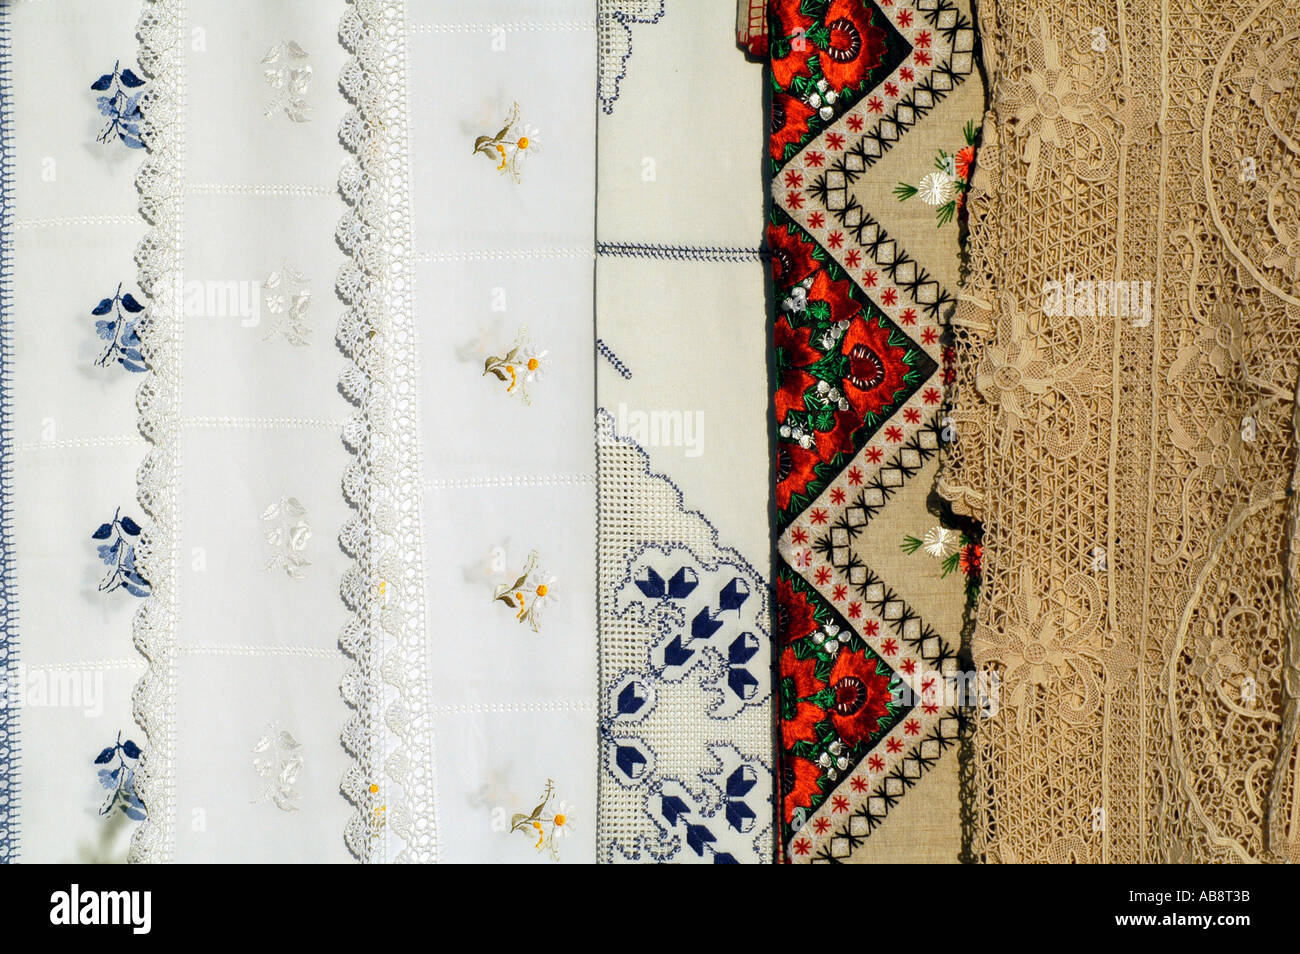 Hungarian tapestry - Stock Image